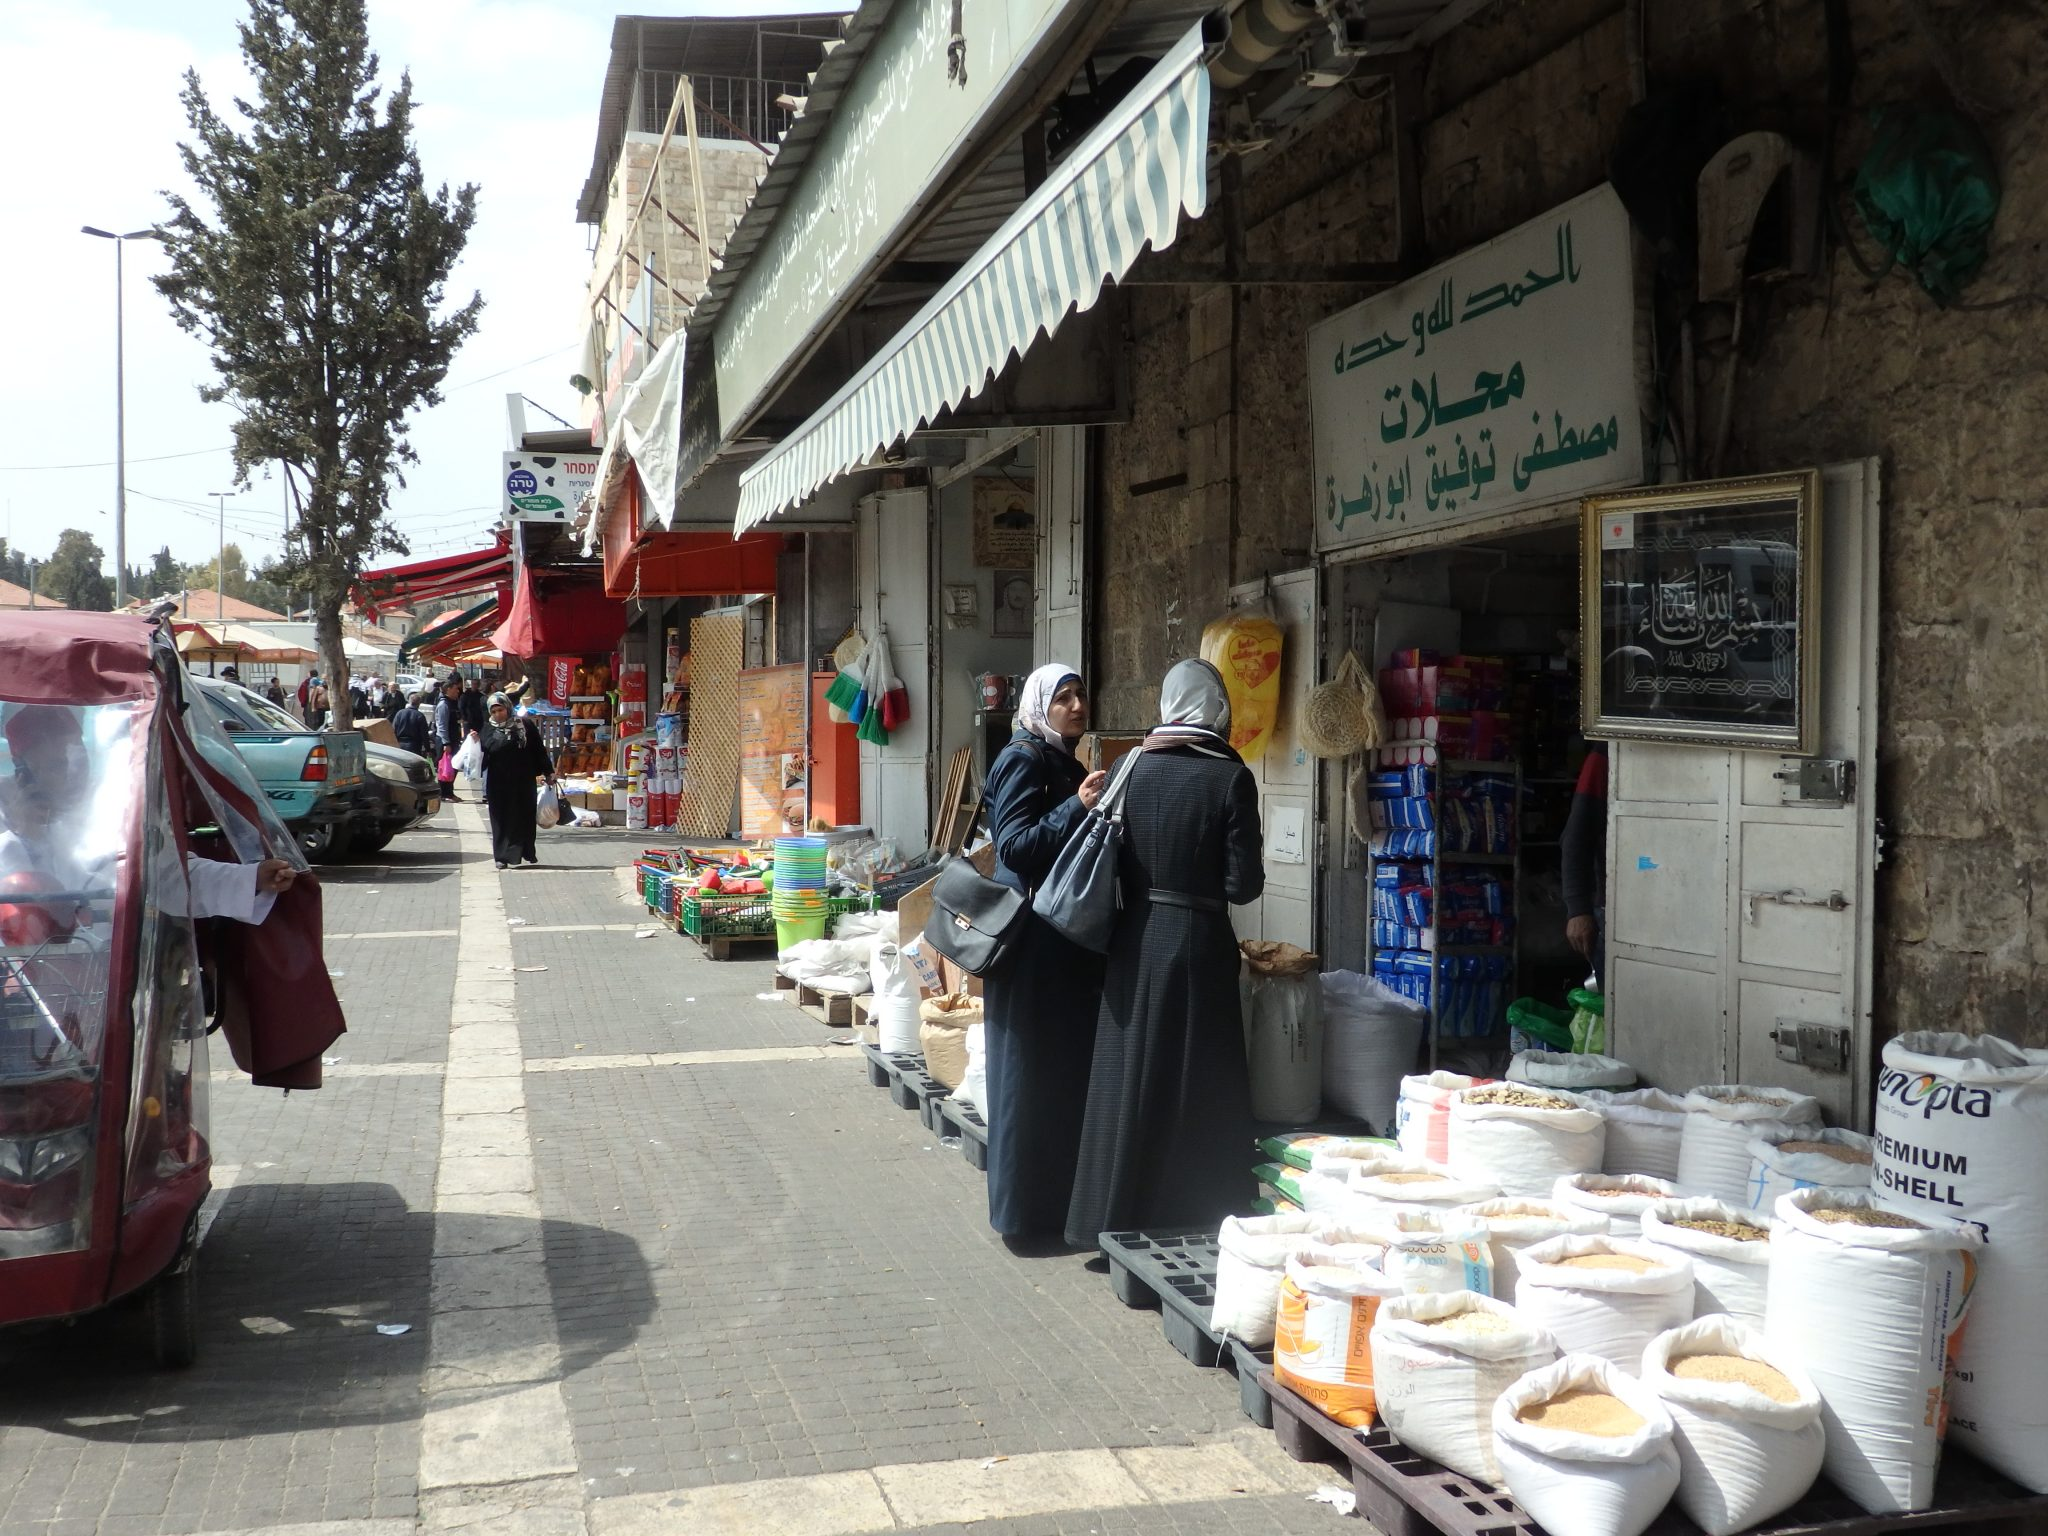 A shopping street in East Jerusalem on the route of my Bitemojo tour.